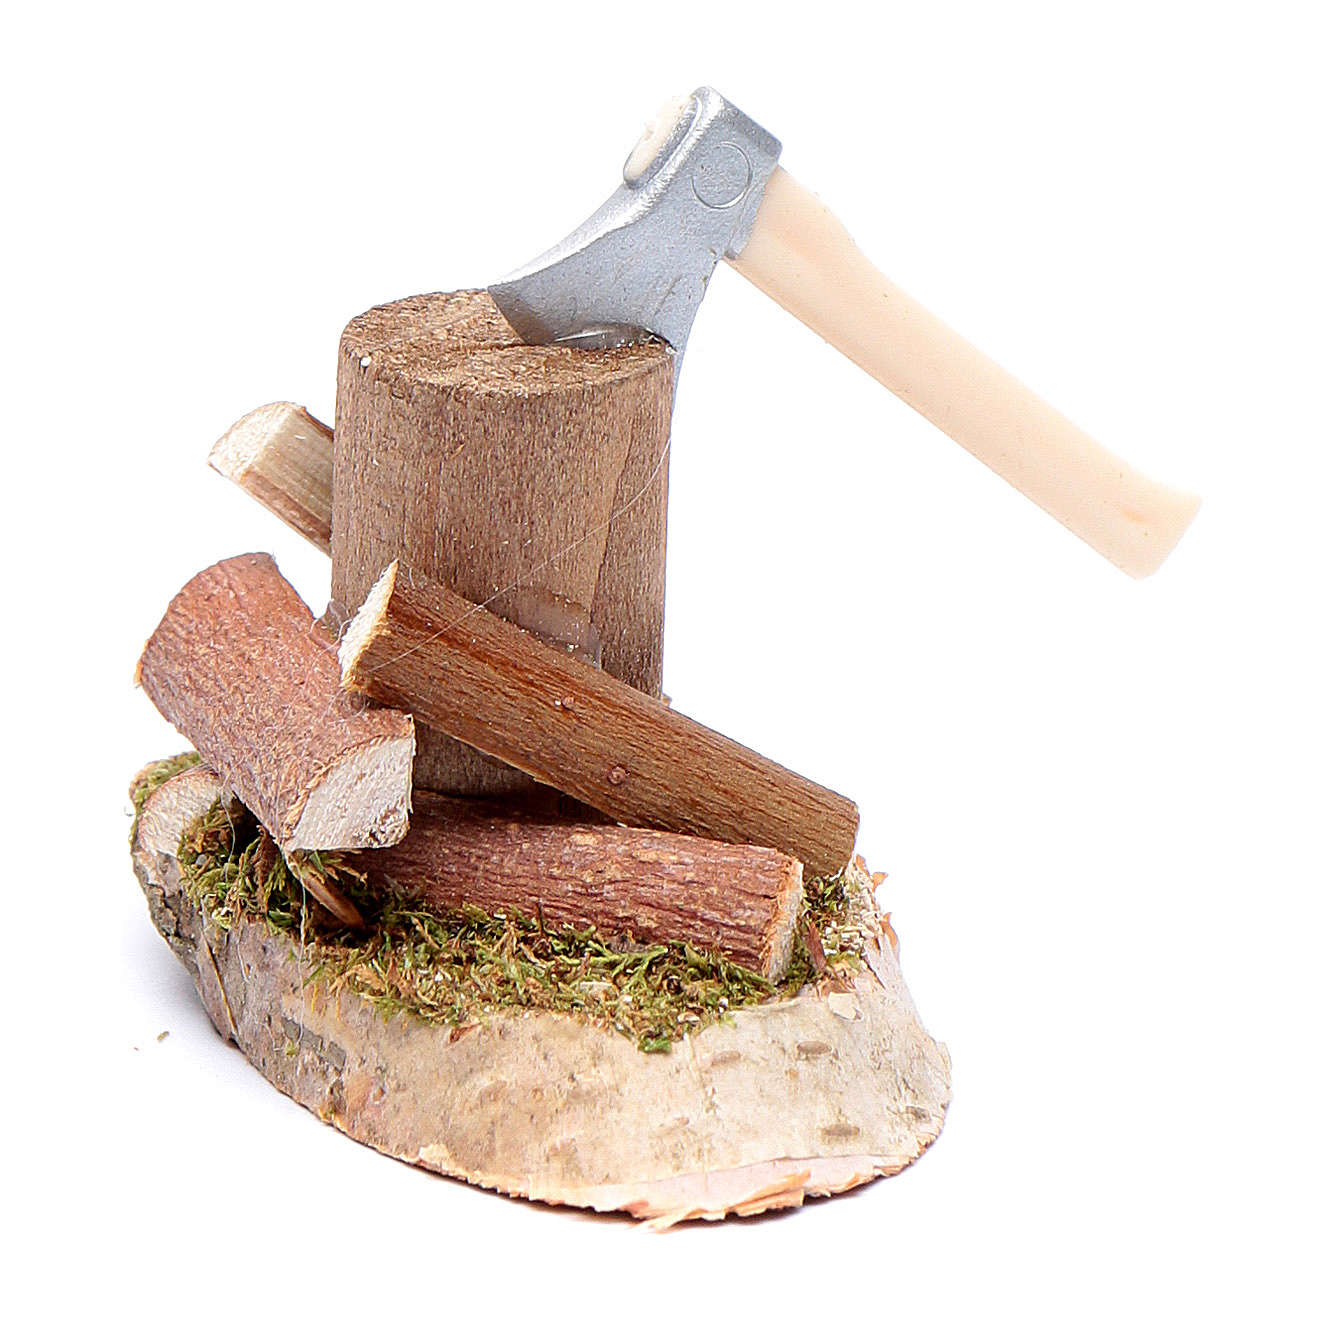 Woodcutter on trunk nativity scene accessories 4